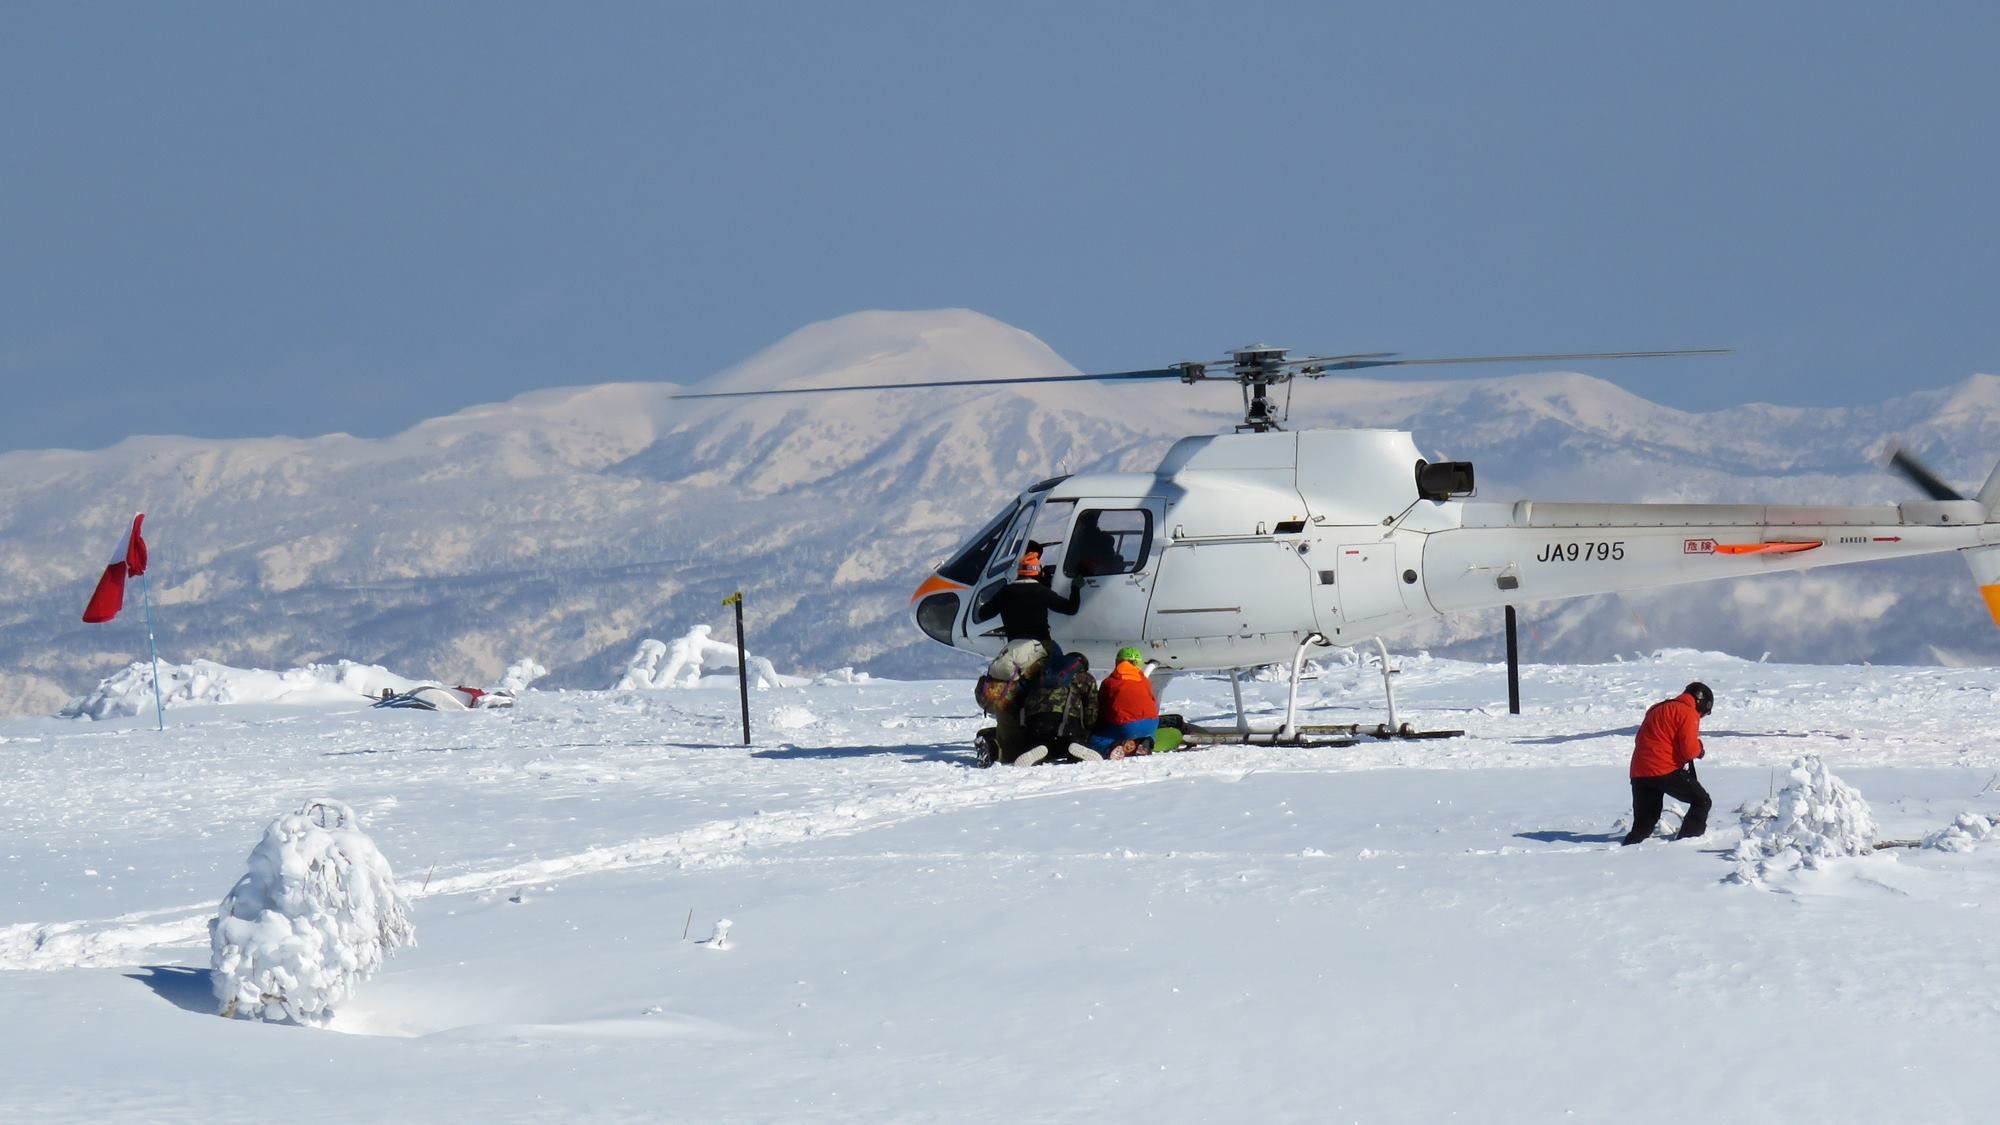 A crew being dropped off on top of the volcano